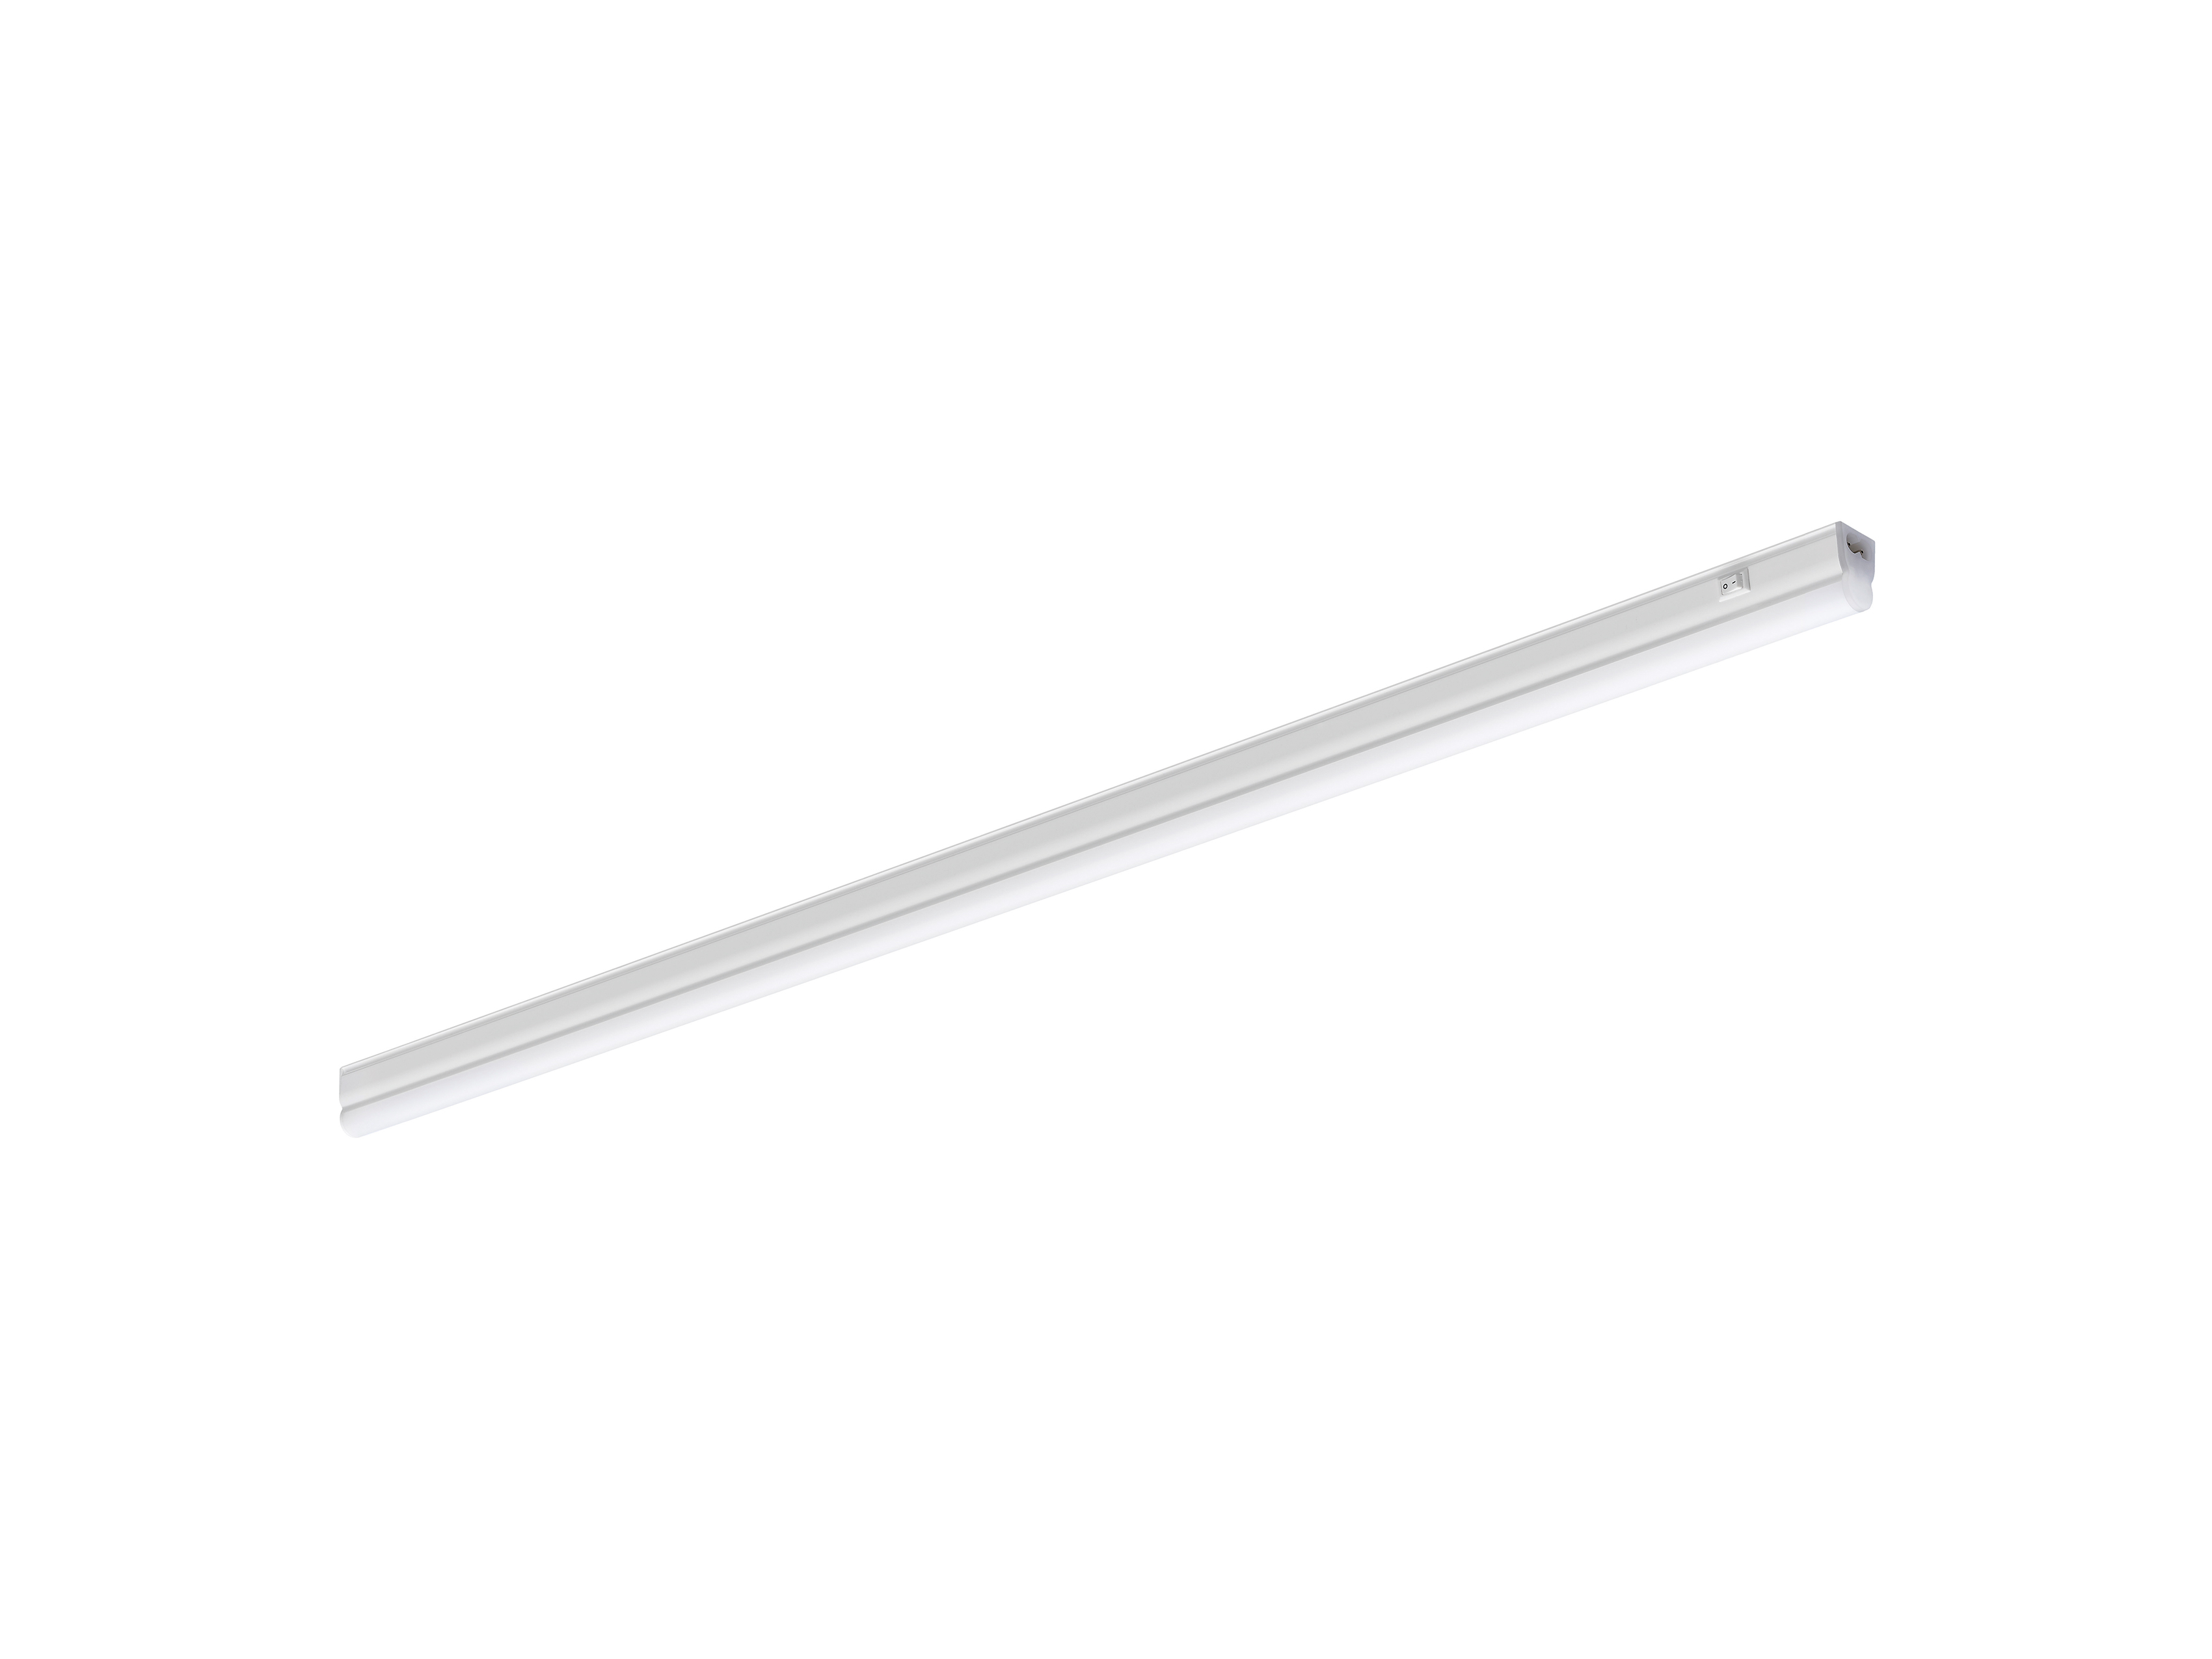 Sylvania PIPE LED under cabinet light 7W cool white 600mm length